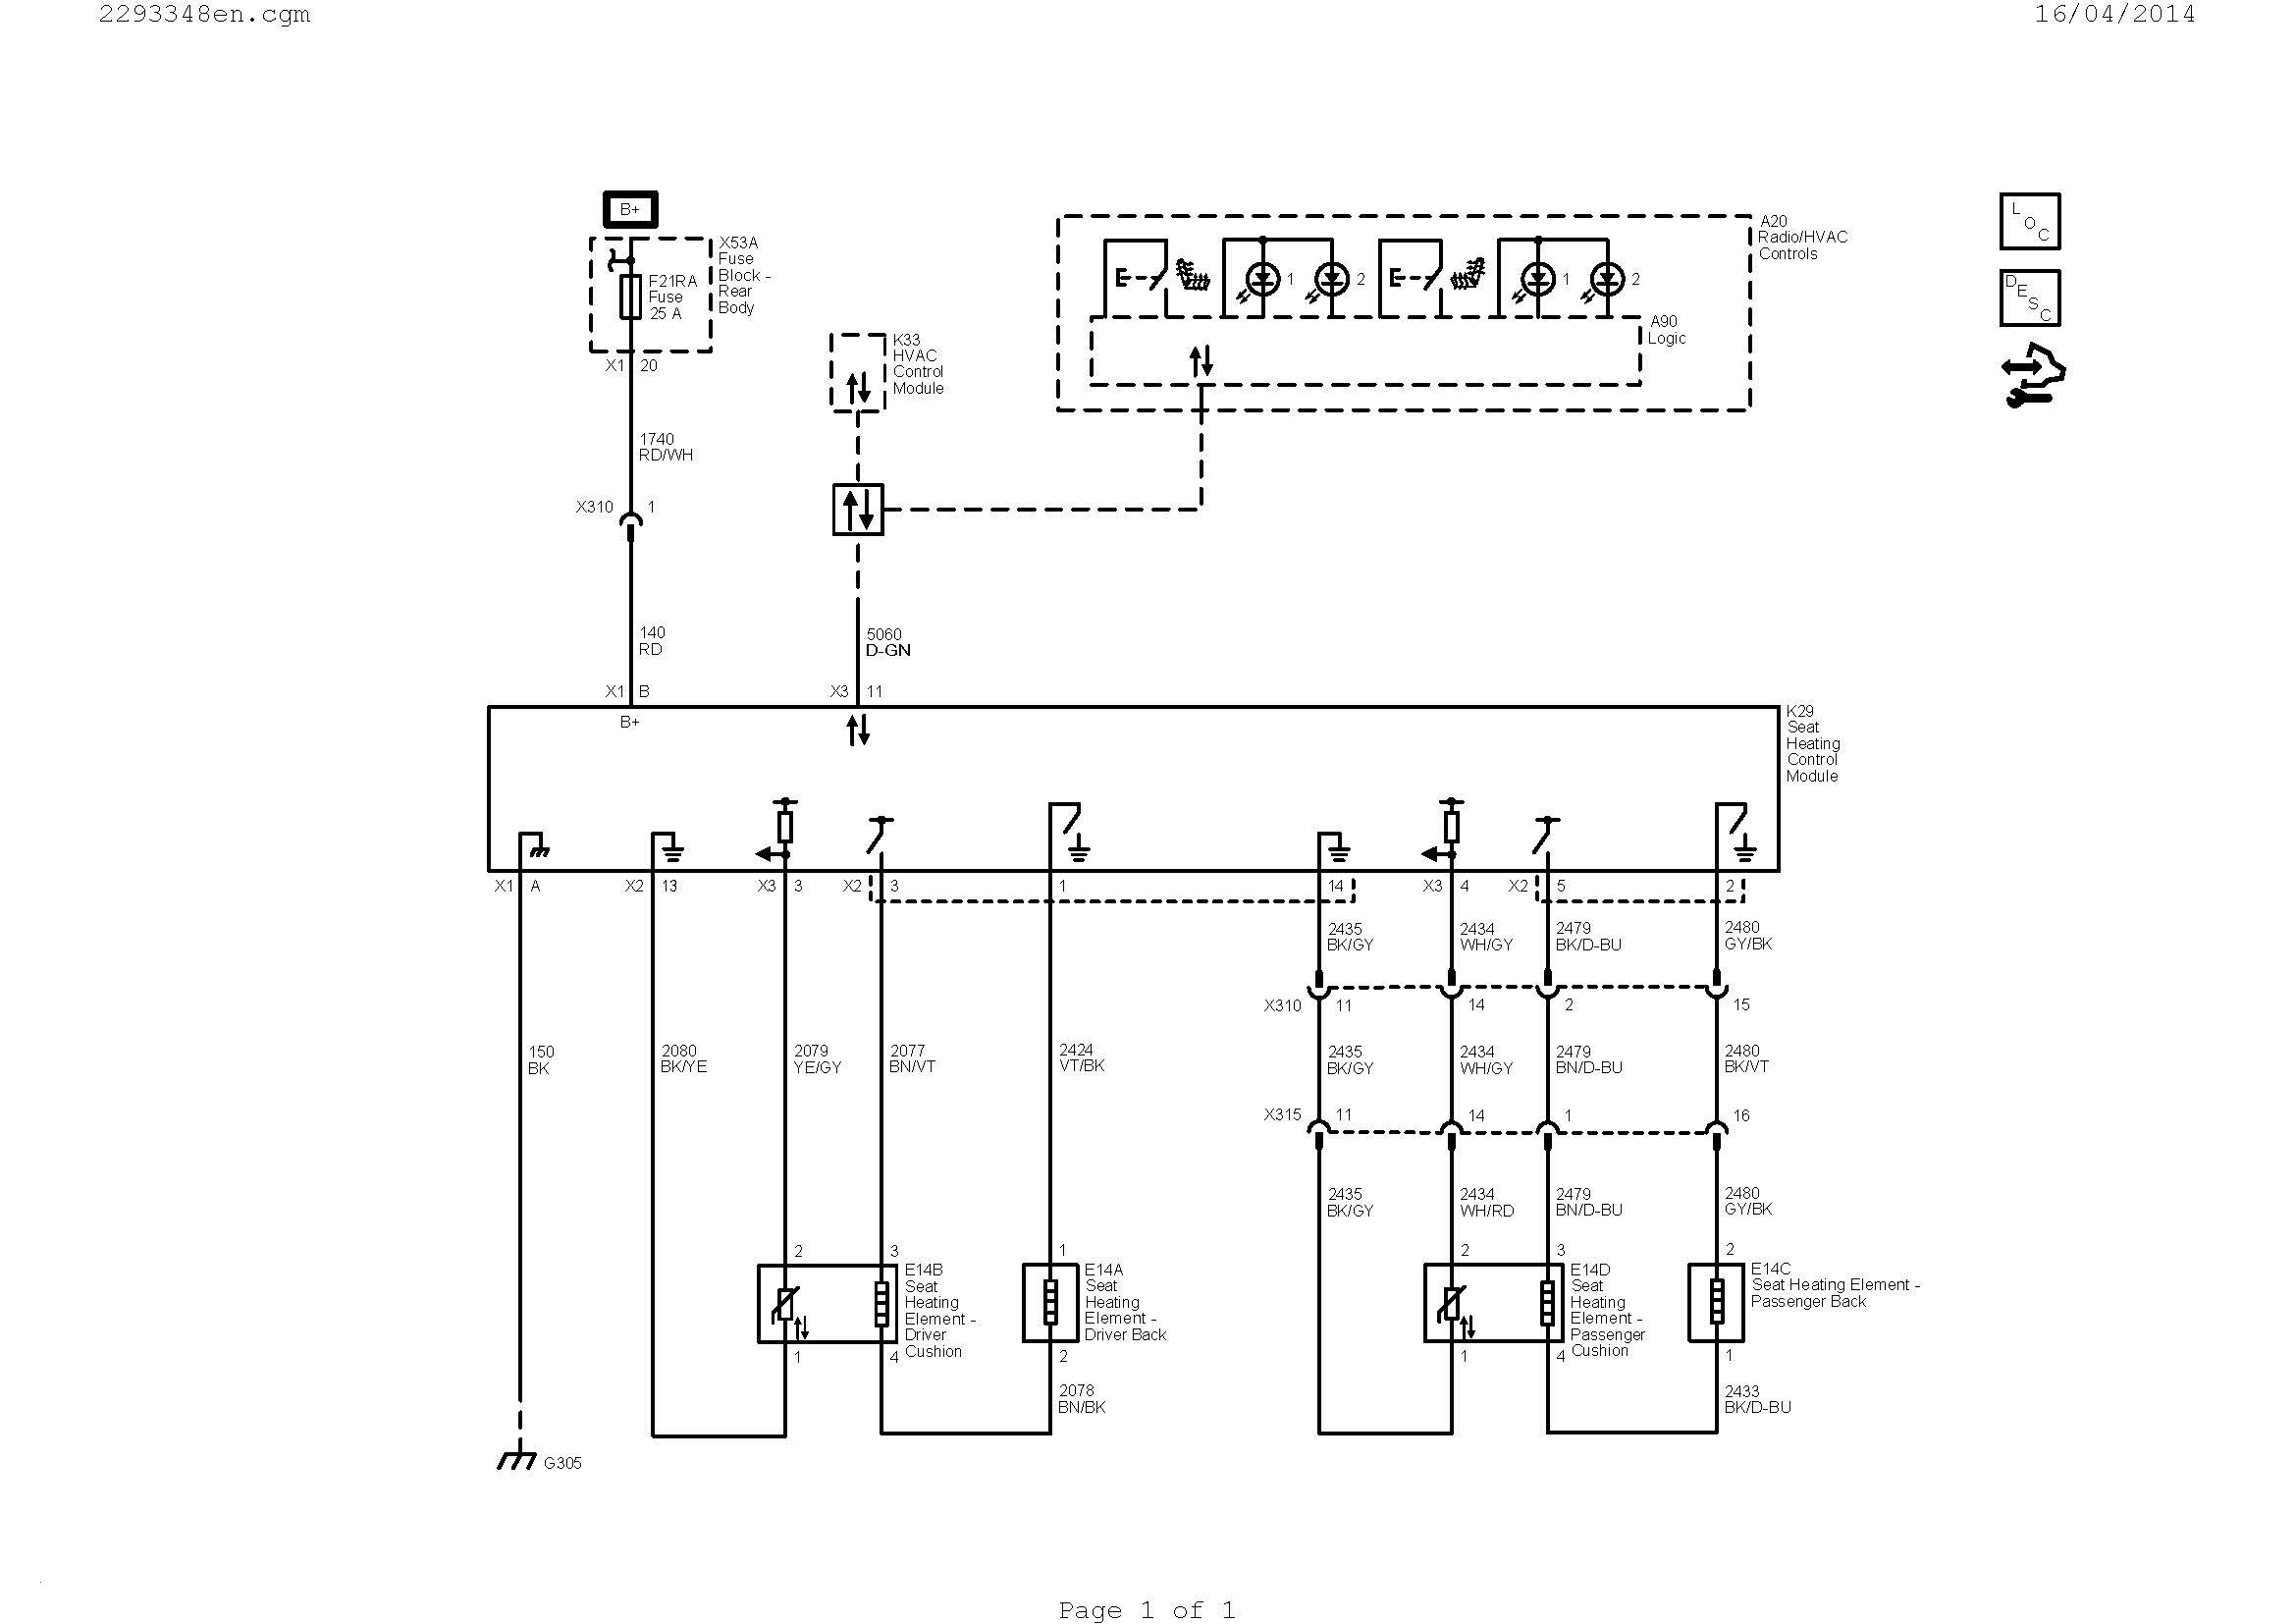 Wire Diagram for Car Stereo Automotive Wiring Diagrams Schaferforcongressfo Of Wire Diagram for Car Stereo Car Radio Wiring Diagram Car Radio Wiring Diagram – Http